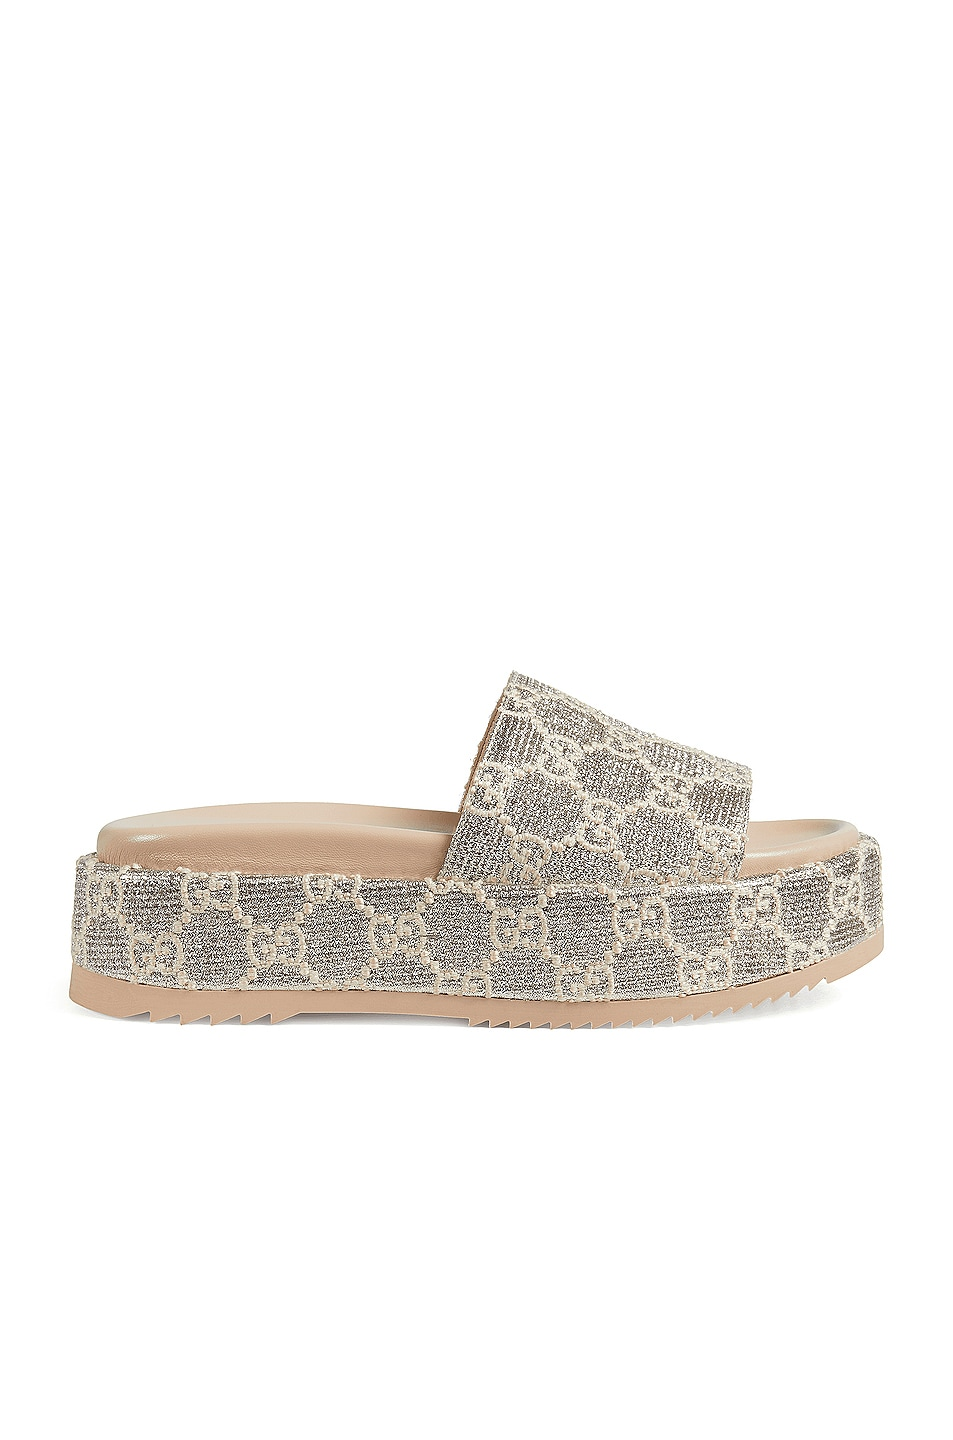 Image 1 of Gucci Angelina Slides in Silver & Beige